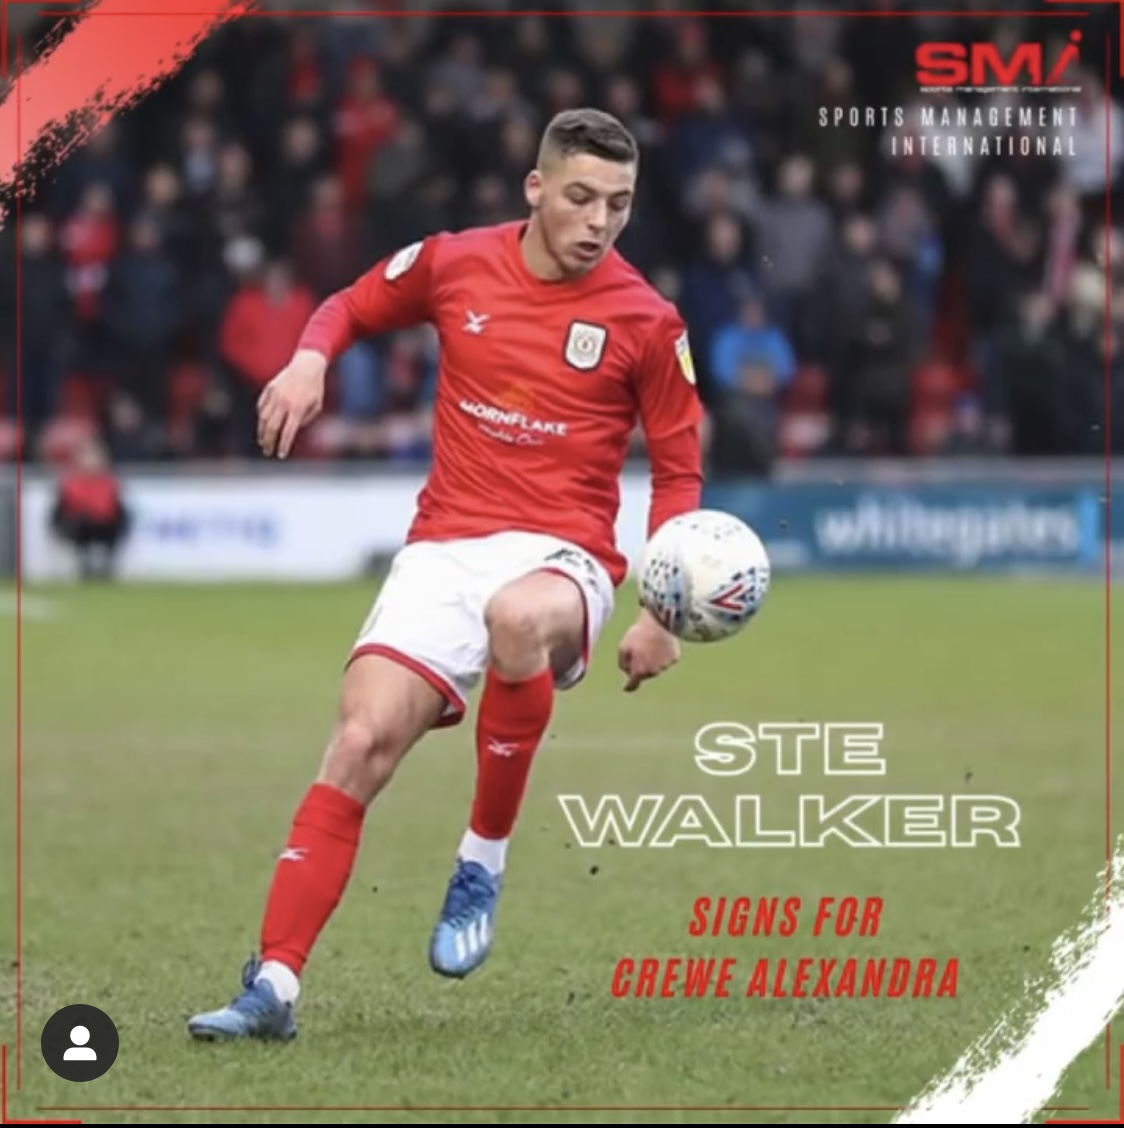 Ste Walker re-joins Crewe on loan